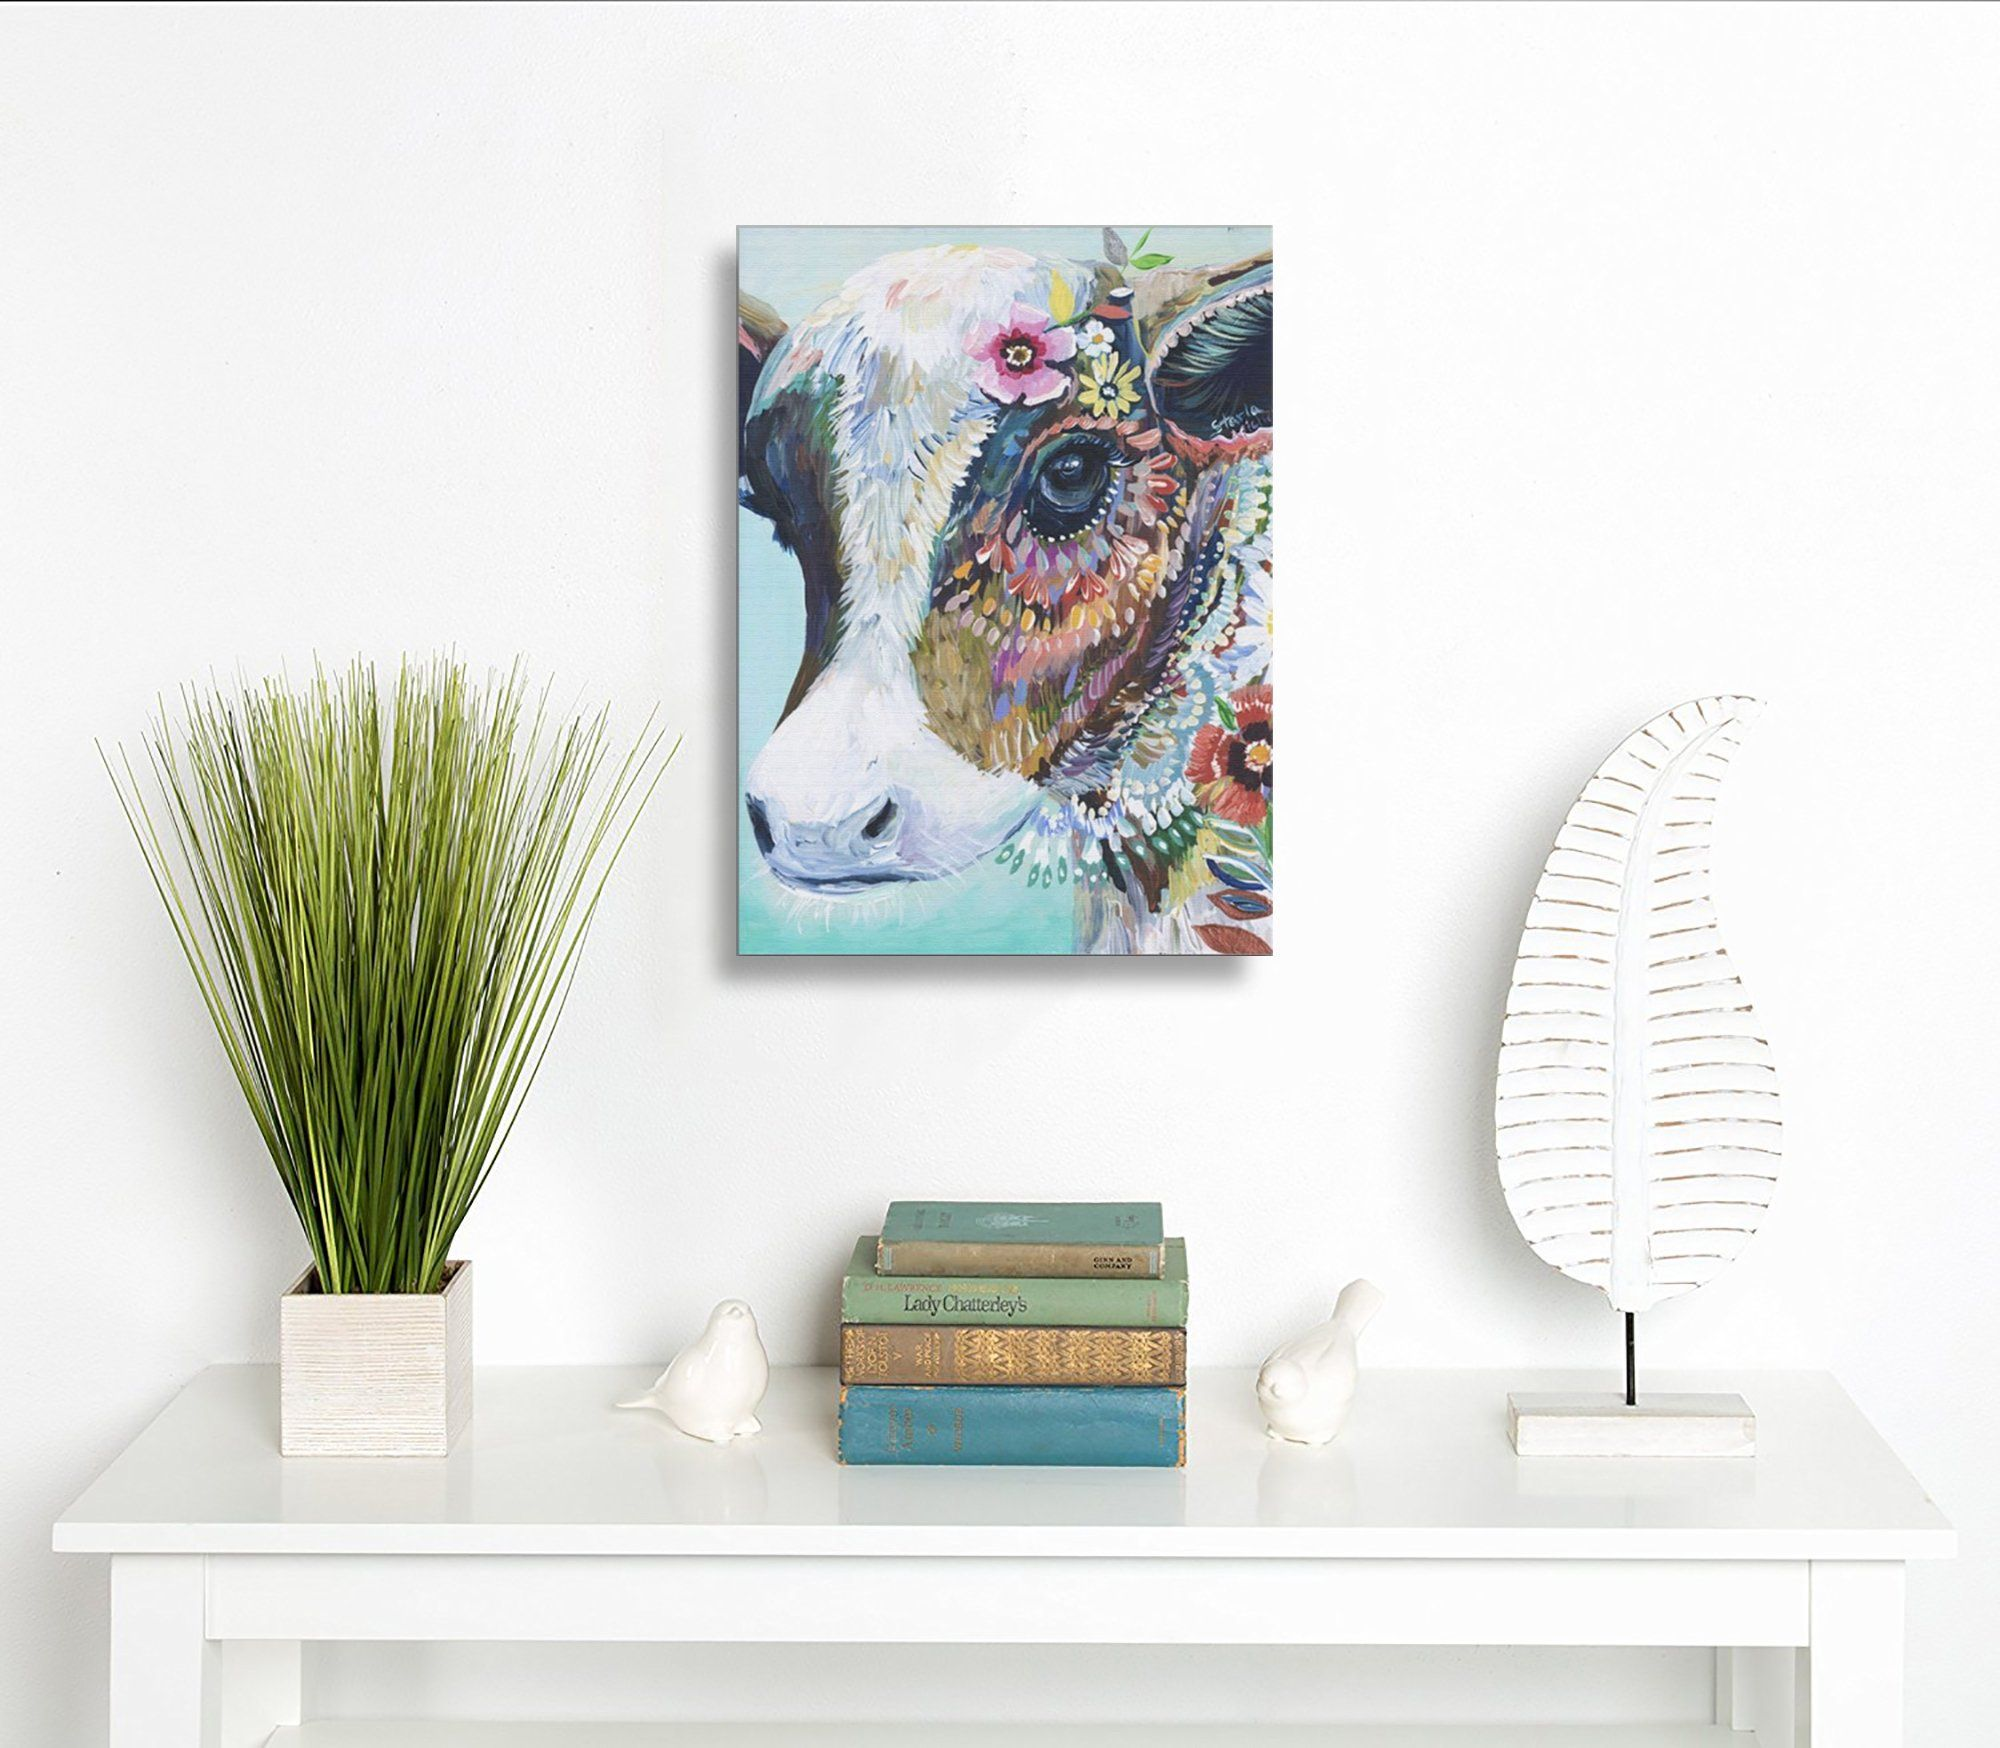 Martoostore Art Colorful Animals Cow Funny Decorative Artwork Abstract Oil Paintings On Canvas Wall Art Cow Painting Framed Oil Painting Oil Painting Abstract